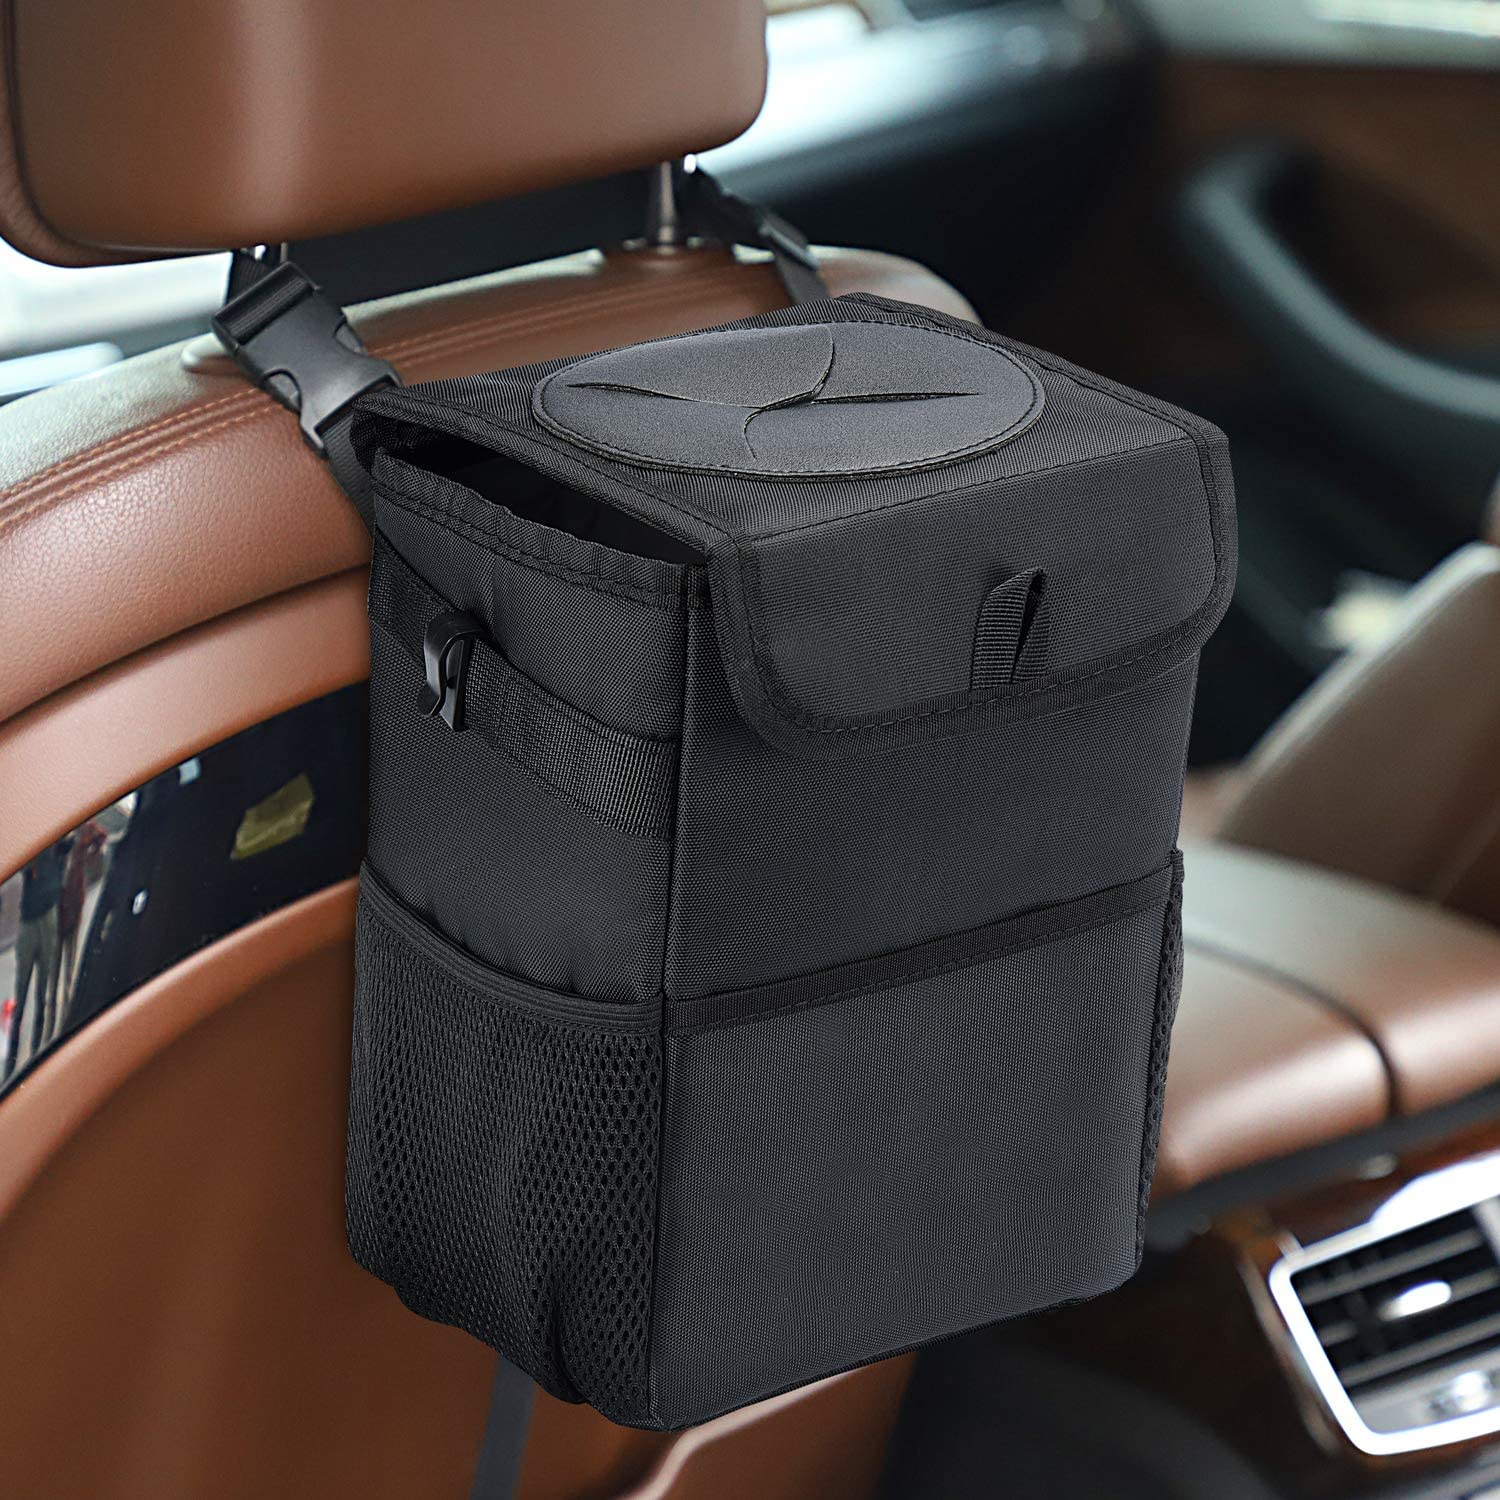 Amazon.com: HOUSEDAY Car Trash Can with Lid and Storage Pockets, 100%  Leak-Proof Car Trash Organizer, Waterproof Car Garbage Can, Multipurpose  Trash Bin for Car - Black 2.4 Gallons: Industrial & Scientific